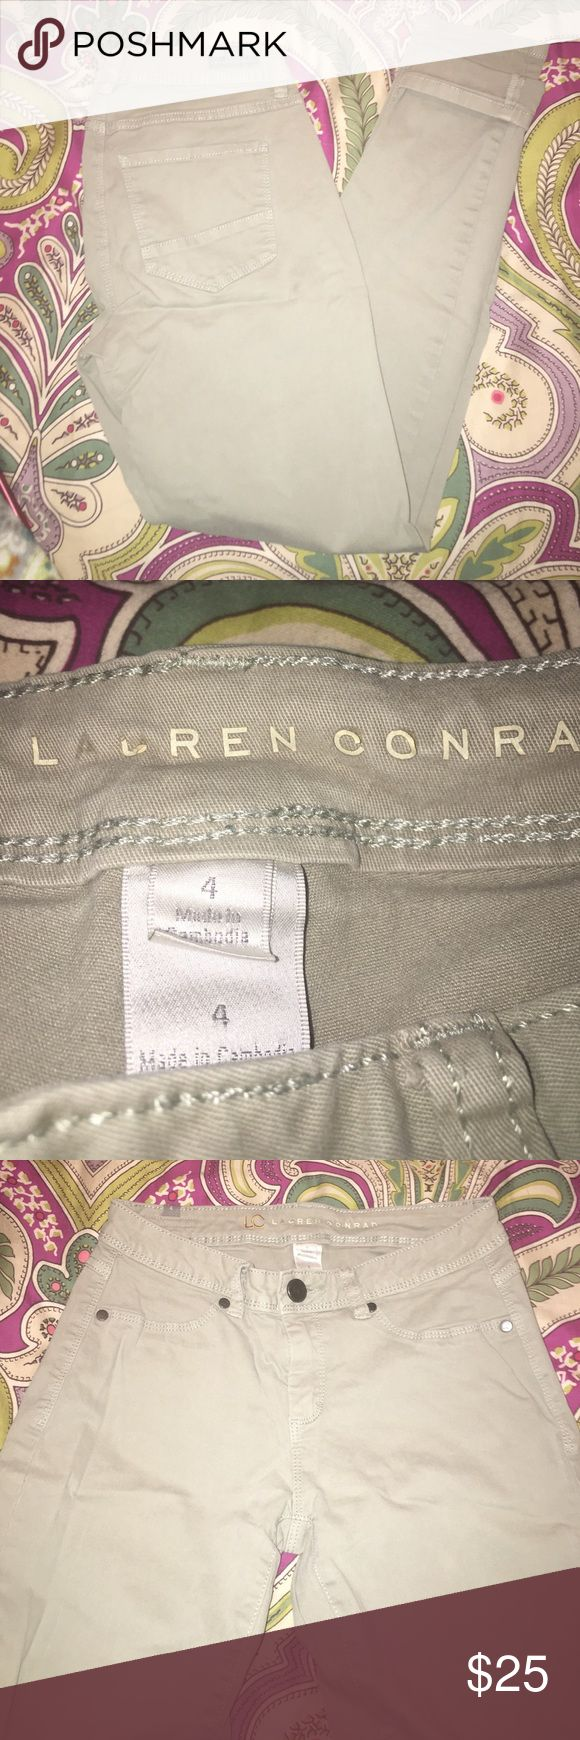 Light Olive Skinny LC Lauren Conrad jeans These light olive green jeans are perfect to transition from winter to spring! Great with pastels and sandals! These pants are very comfortable and flattering ✨ LC Lauren Conrad Jeans Skinny